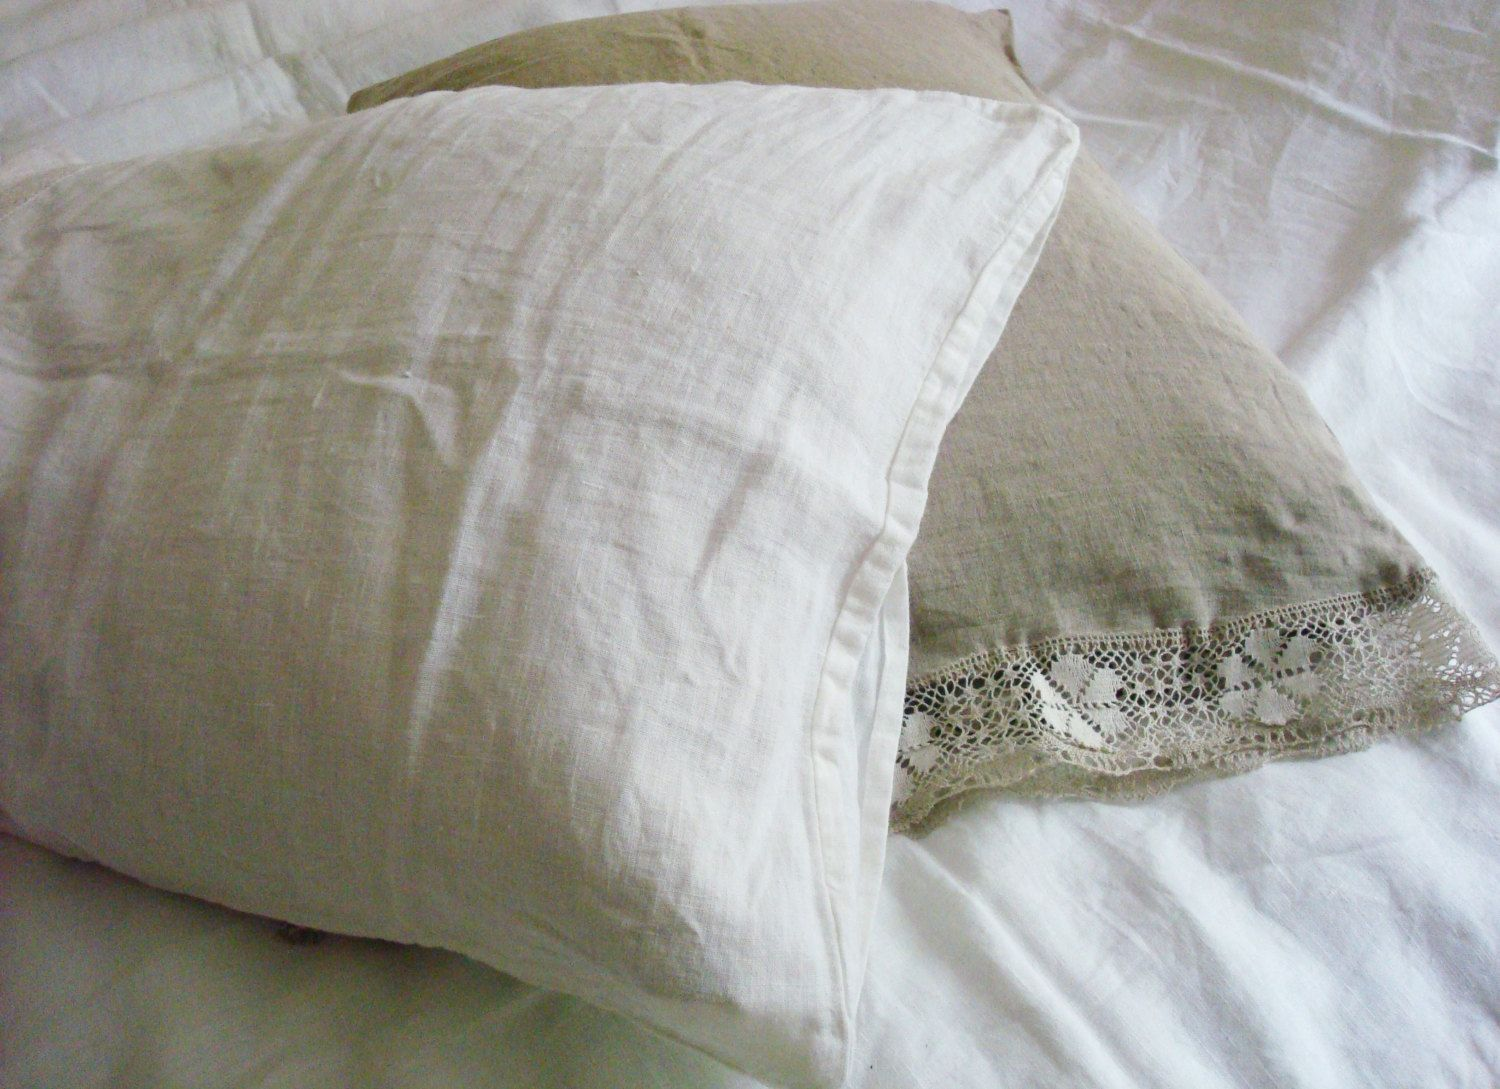 Simple white linen pillow case stonewashed linen pillowcase shabby chic linen bed set  by LUXOTEKS (25.00 USD) by Luxoteks